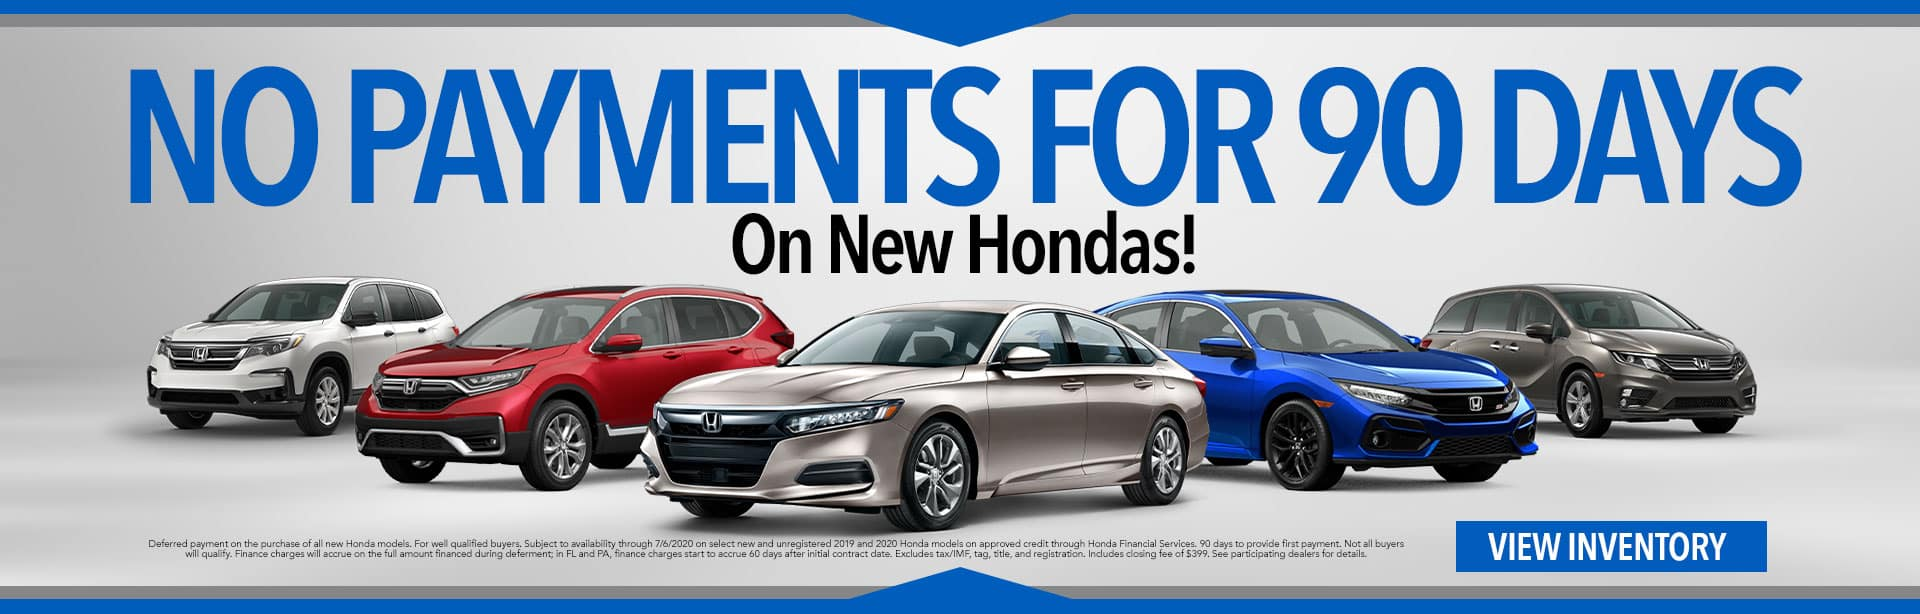 No Payments for 90 Days at Stokes Honda Cars of Beaufort